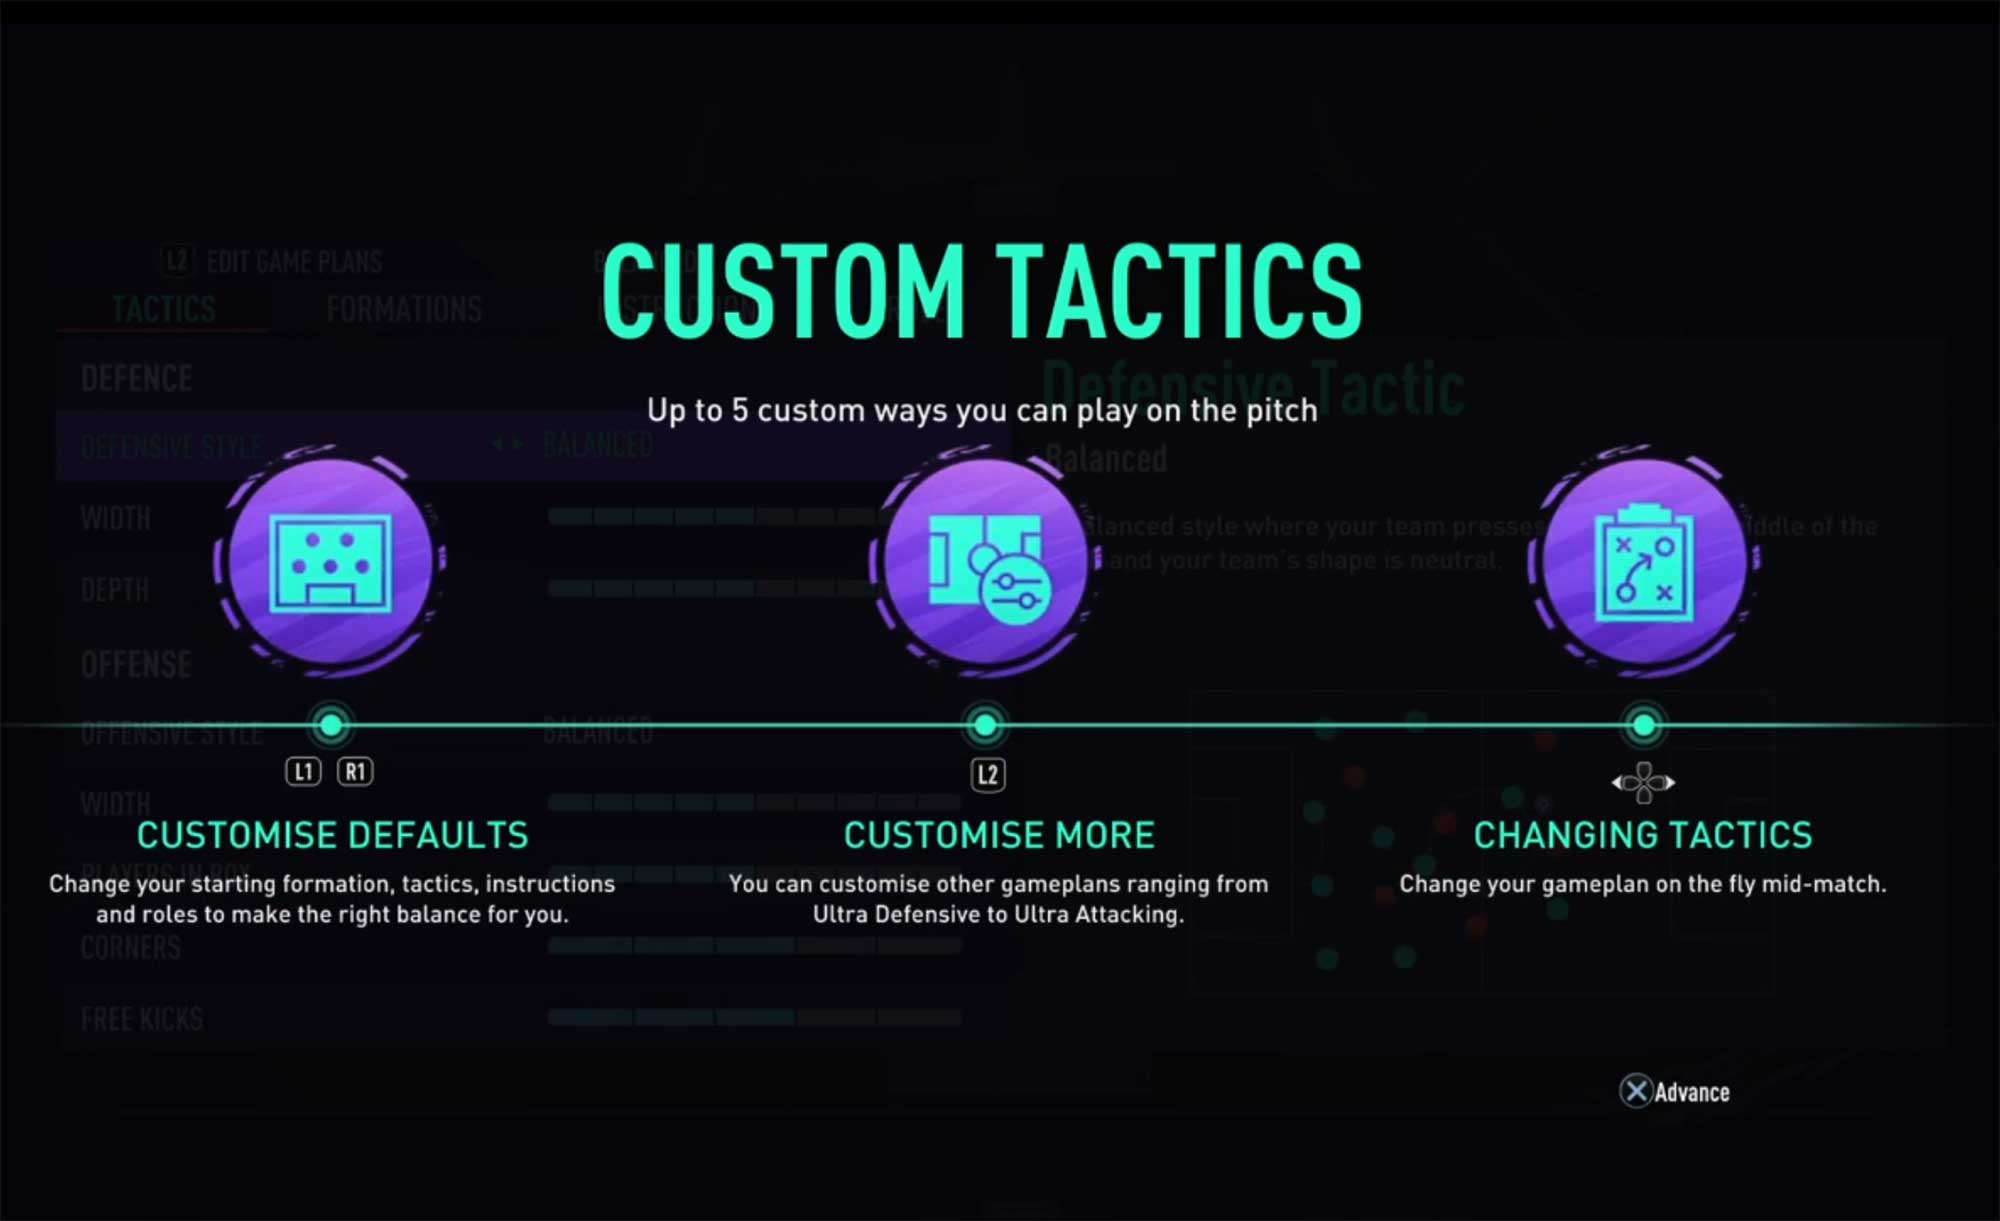 FIFA 21 Dynamic Tactics Guide - Create Your Own Game Plans